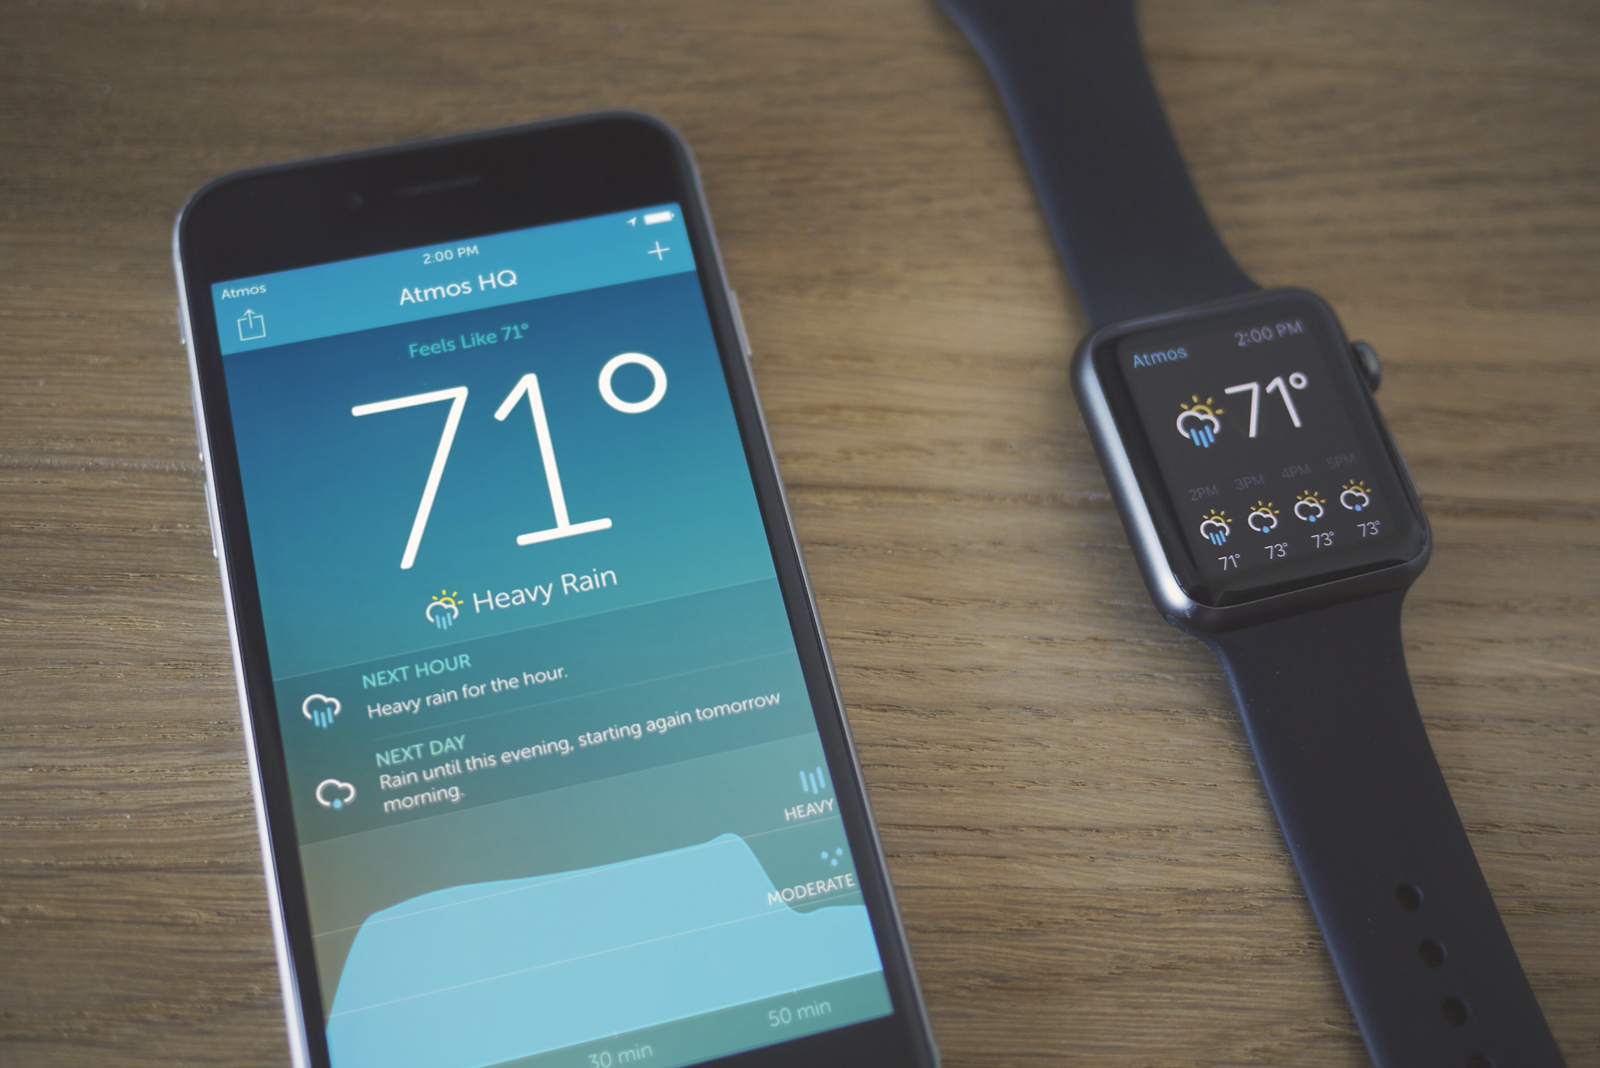 The new weather app Atmos provides elegance and accuracy